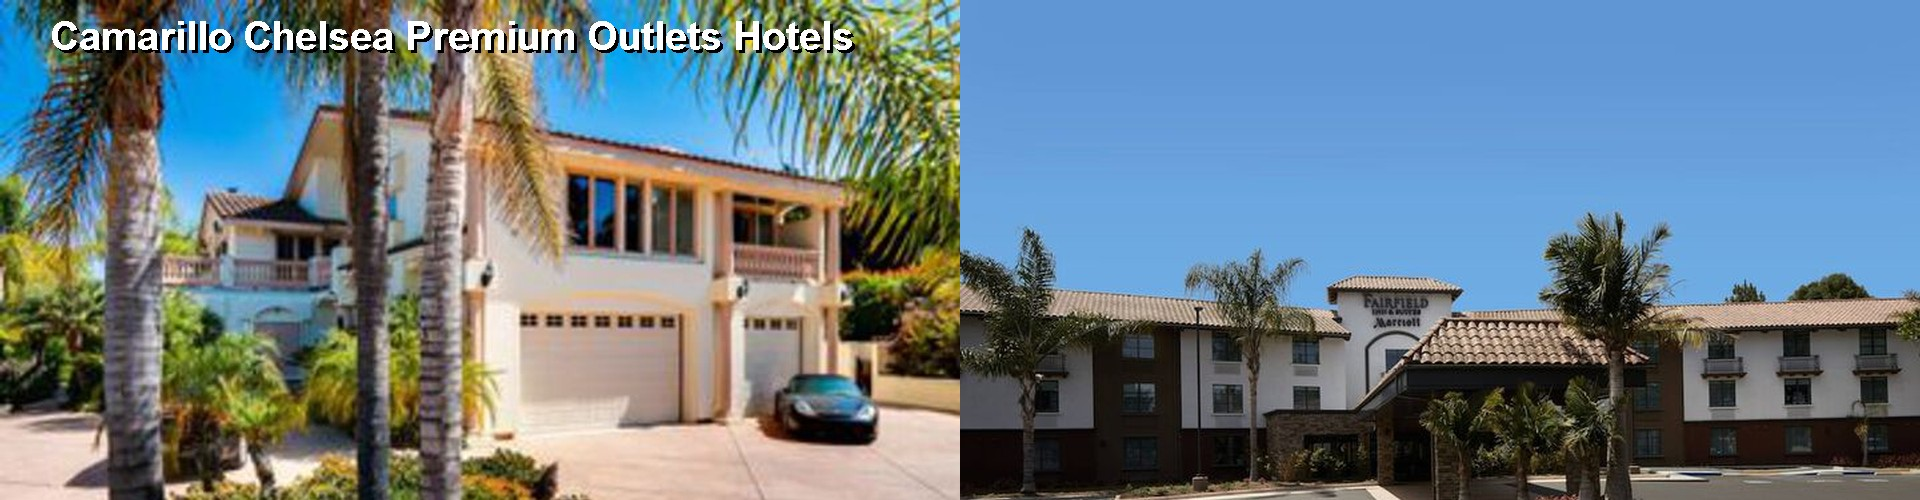 5 Best Hotels near Camarillo Chelsea Premium Outlets